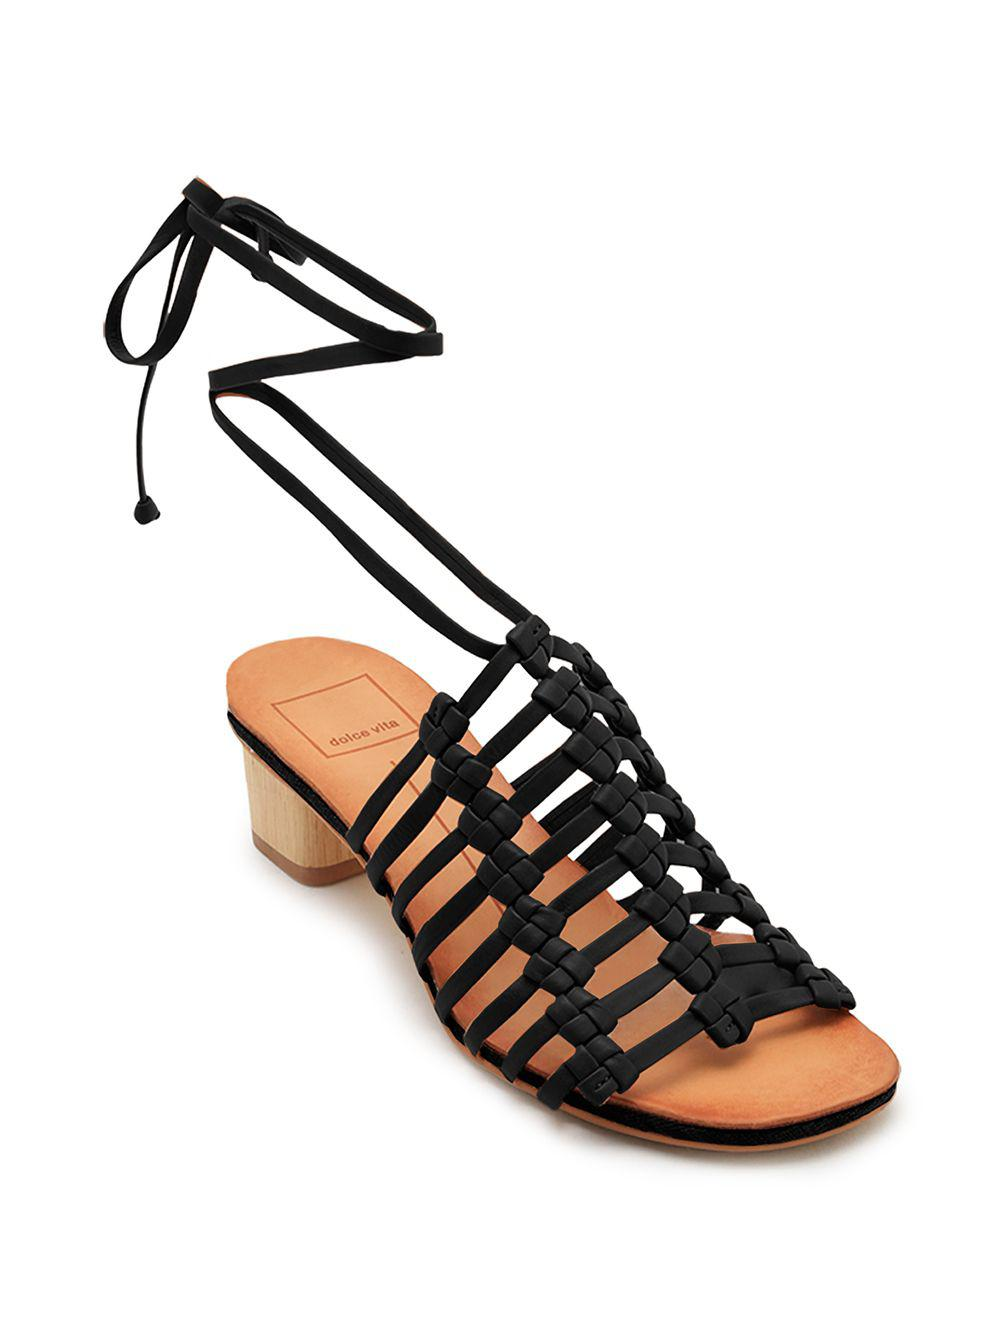 455c33b6b4f Dolce Vita Kai Leather Macramé Sandals in Black - Lyst